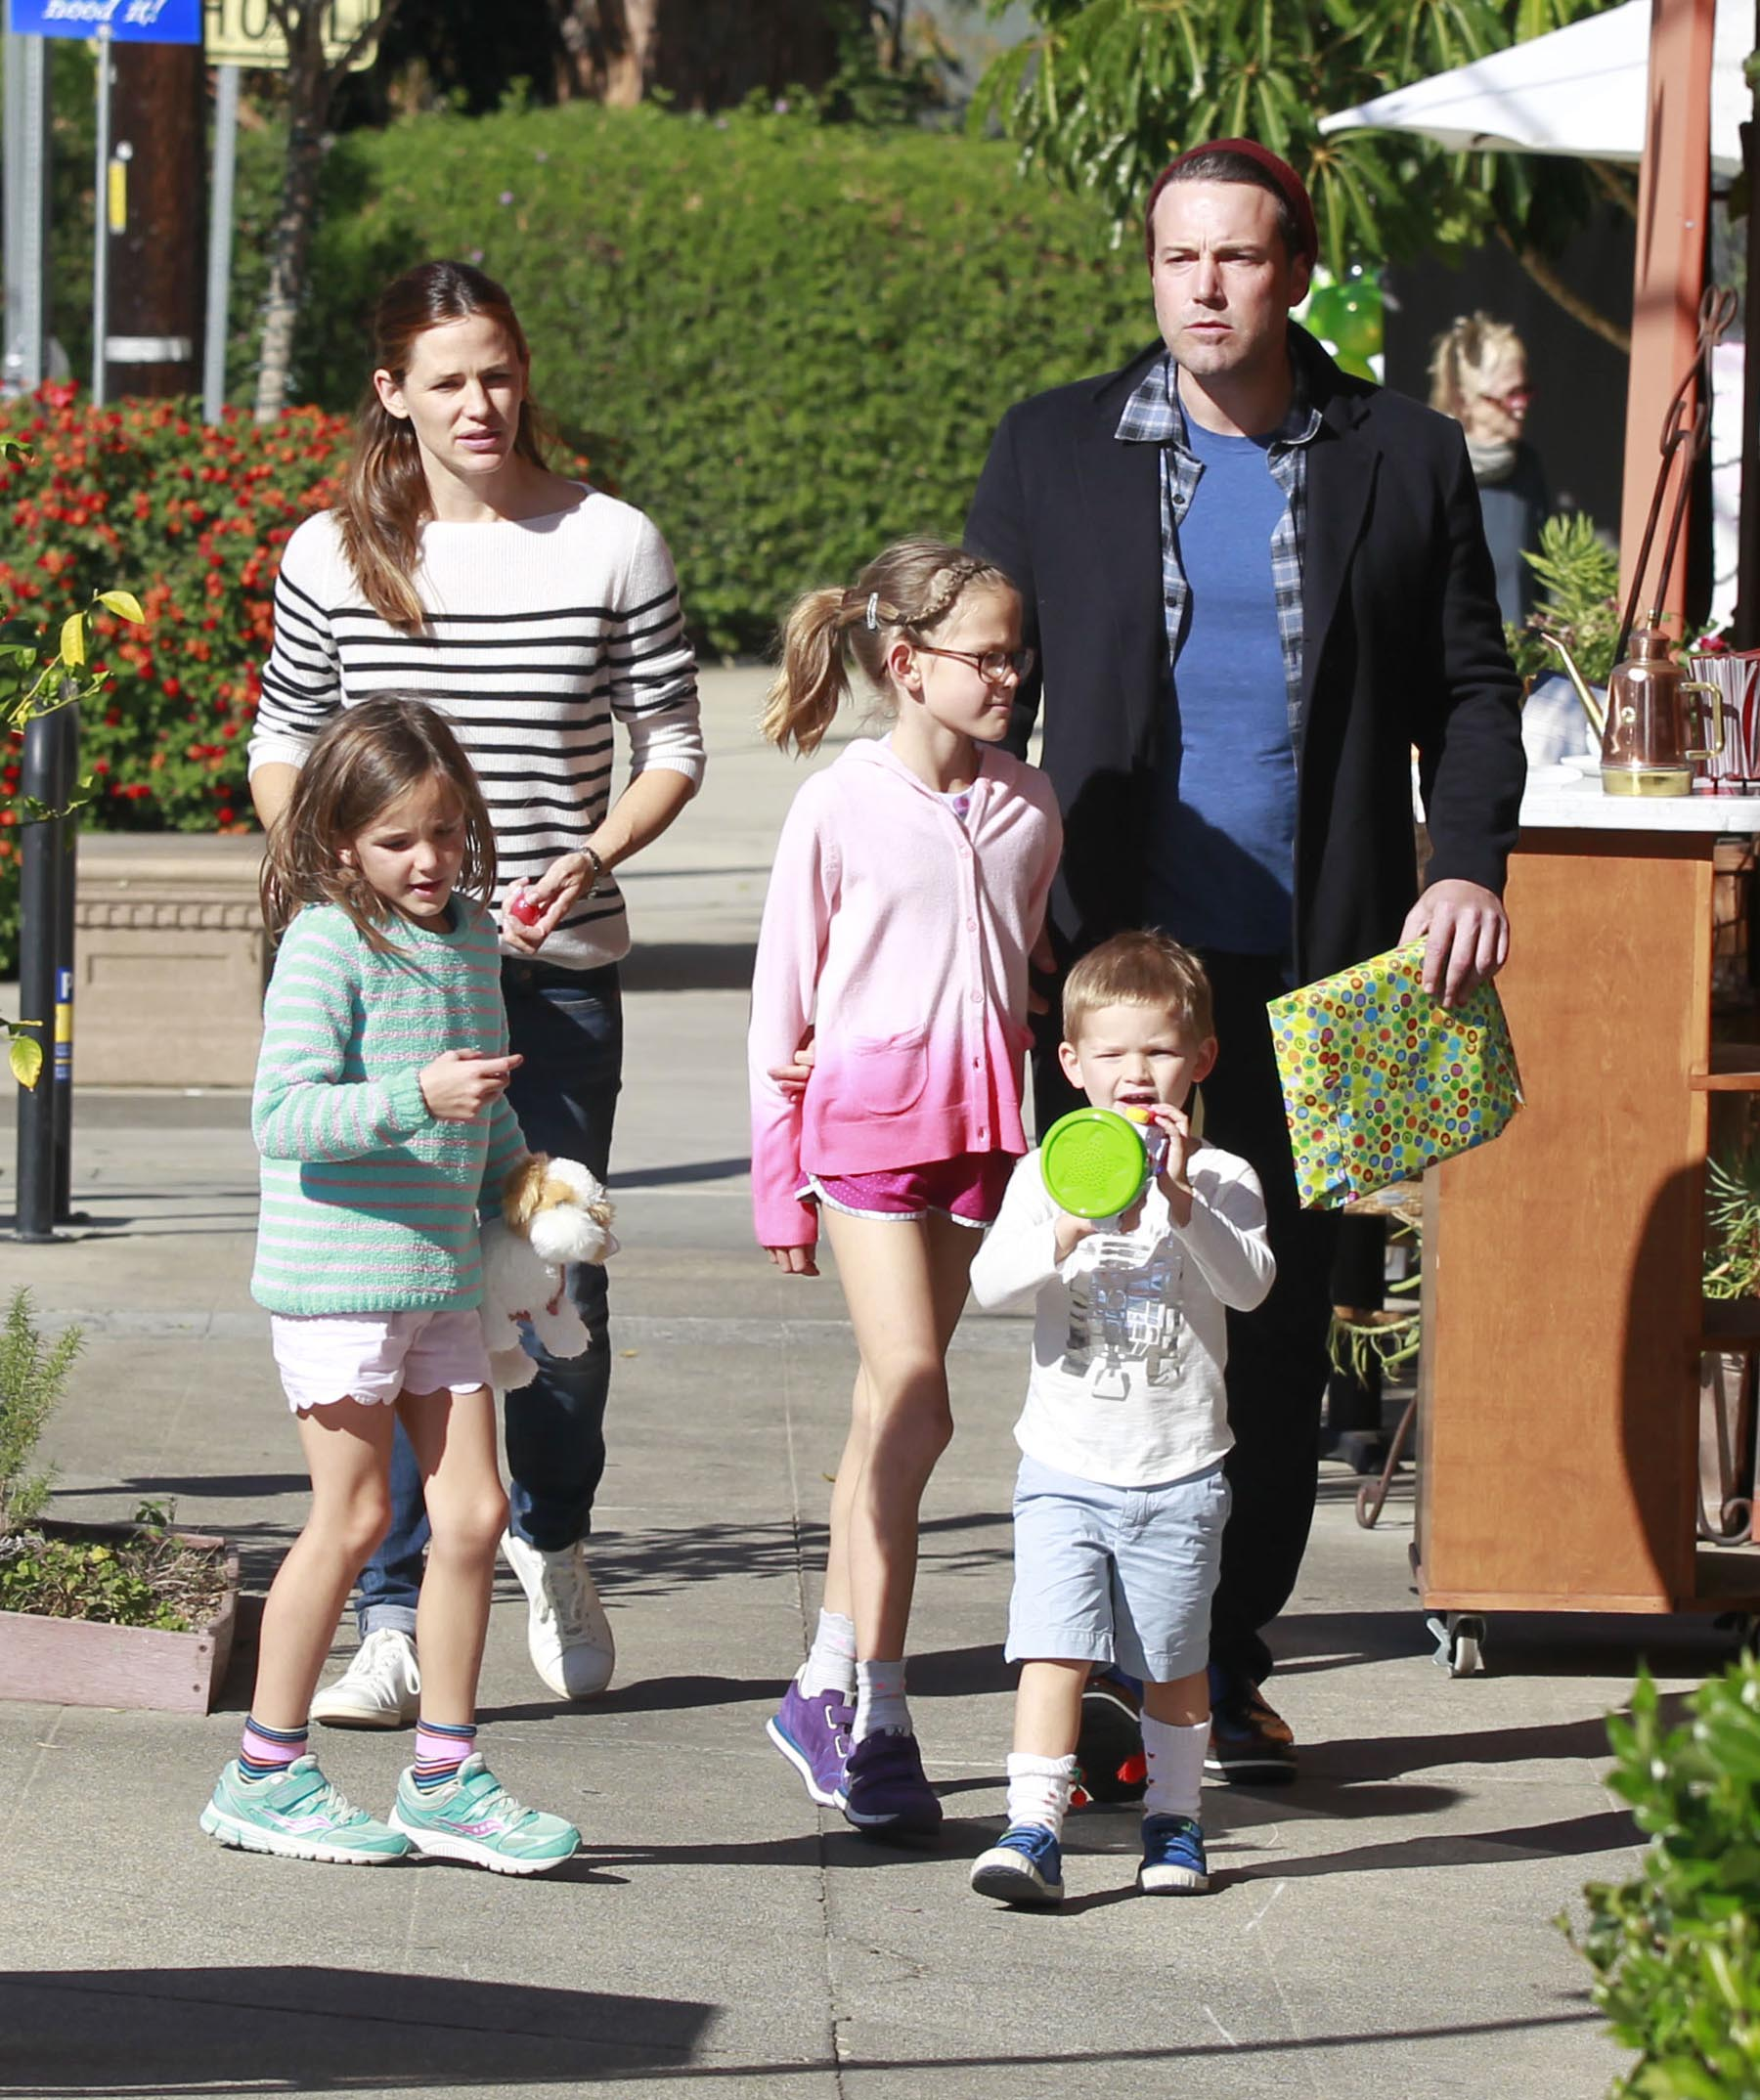 Photo © 2015 Ramey Photo Agency/The Grosby Group Los Angeles, November 14, 2015. Estranged couple Ben Affleck and Jennifer Garner are seen leaving Duff's Cakemix in West Hollywood and a toy store in Brentwood, California with their children Violet, Seraphina, and Samuel on November 14, 2015. Ben is enjoying some family time after filming his new movie 'Live By Night' in Massachusetts & Georgia.